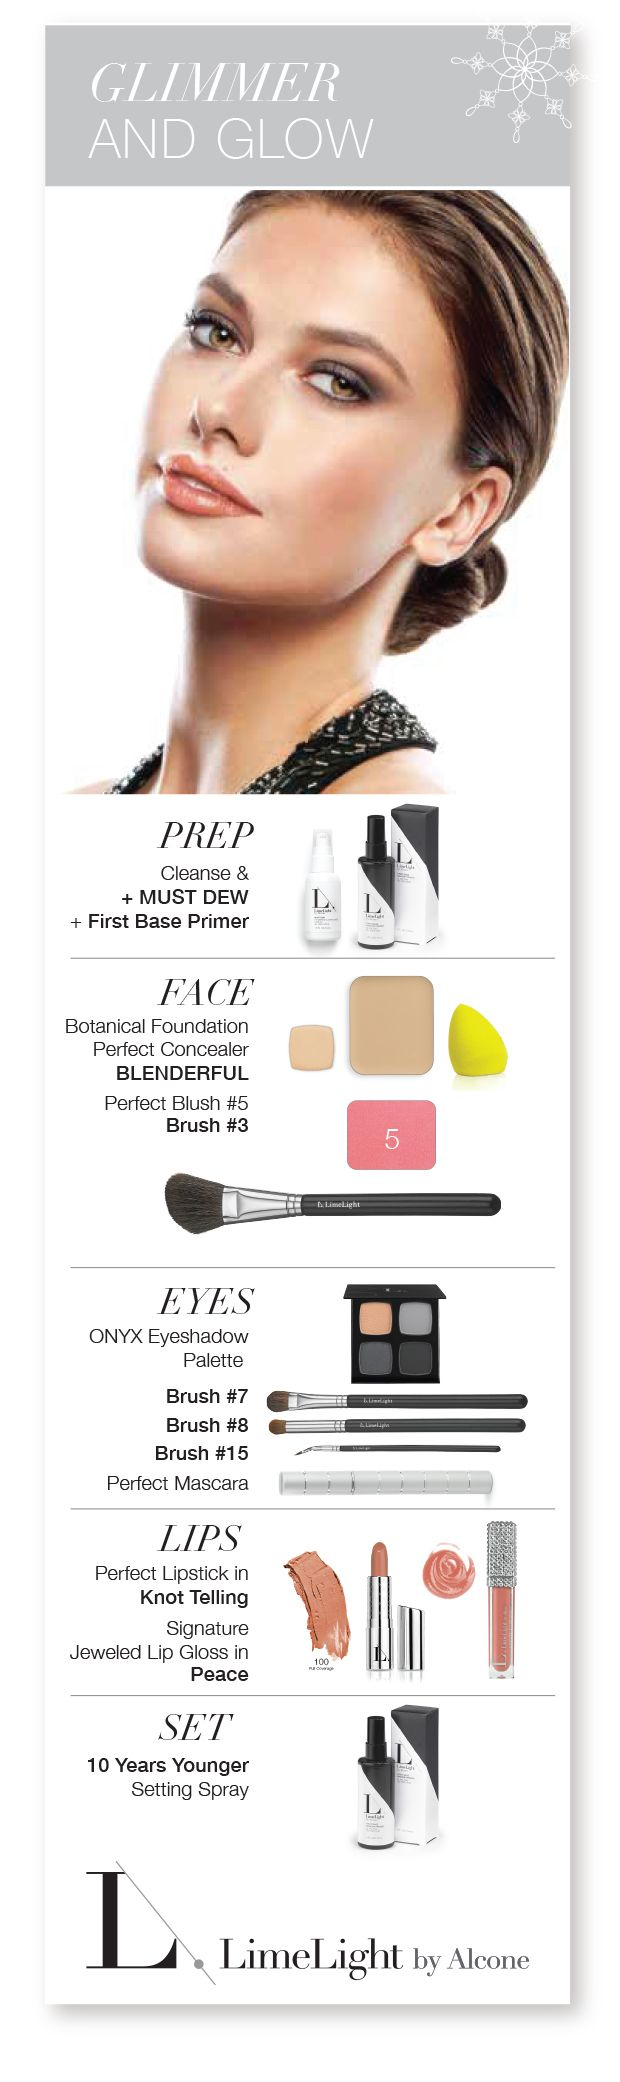 Get Gorgeous for the Holiday or any day! Follow these steps for the most beautiful you. LimeLight by Alcone  Professional beauty products and skin care